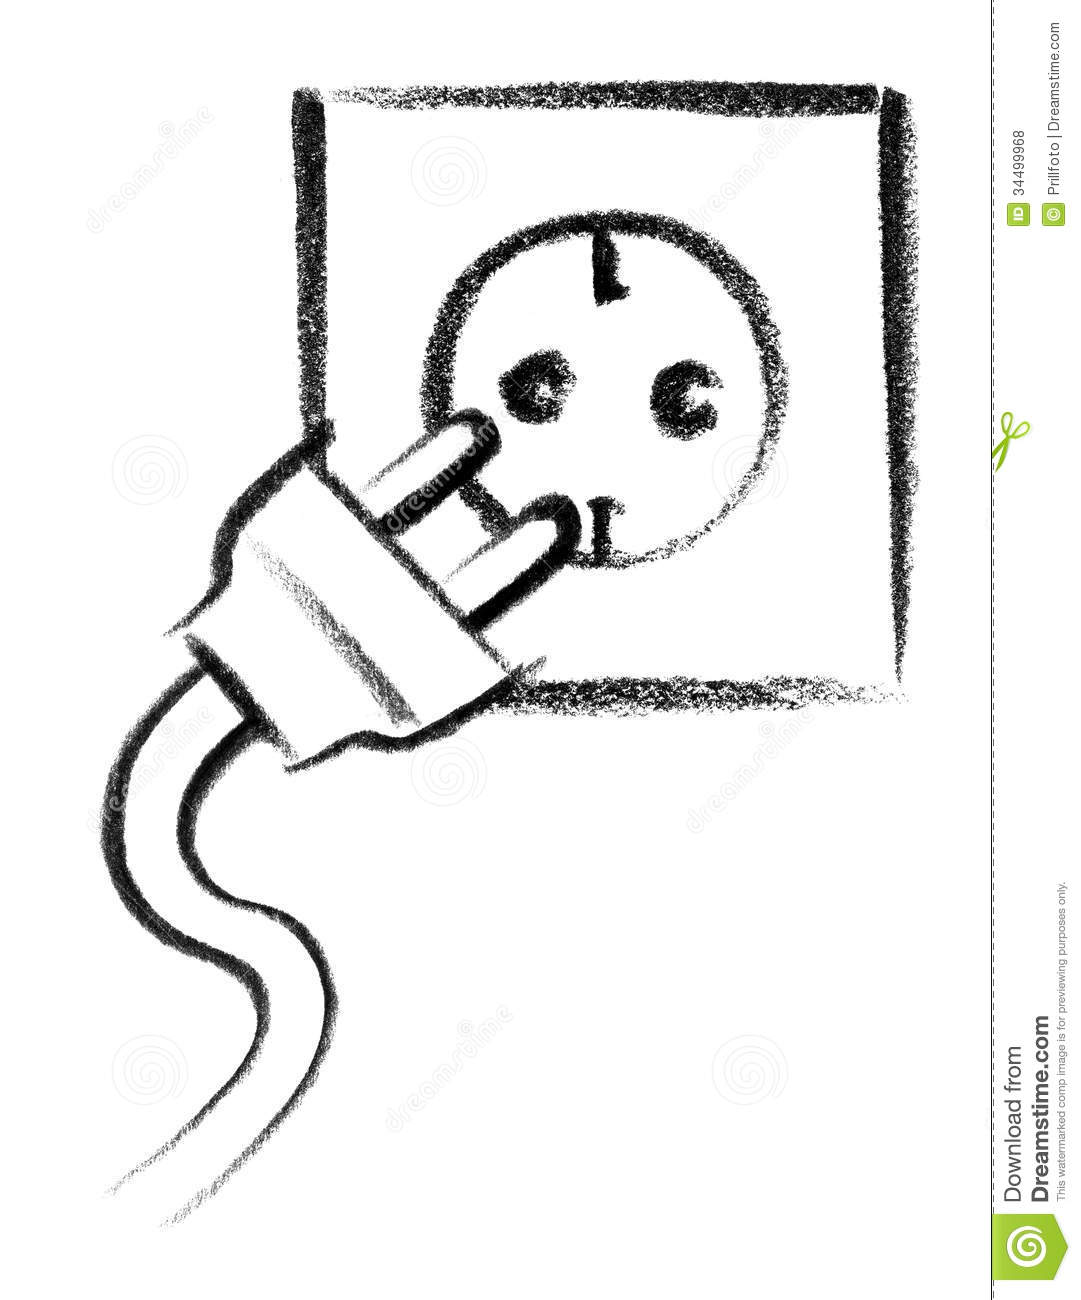 wiring harness clipart